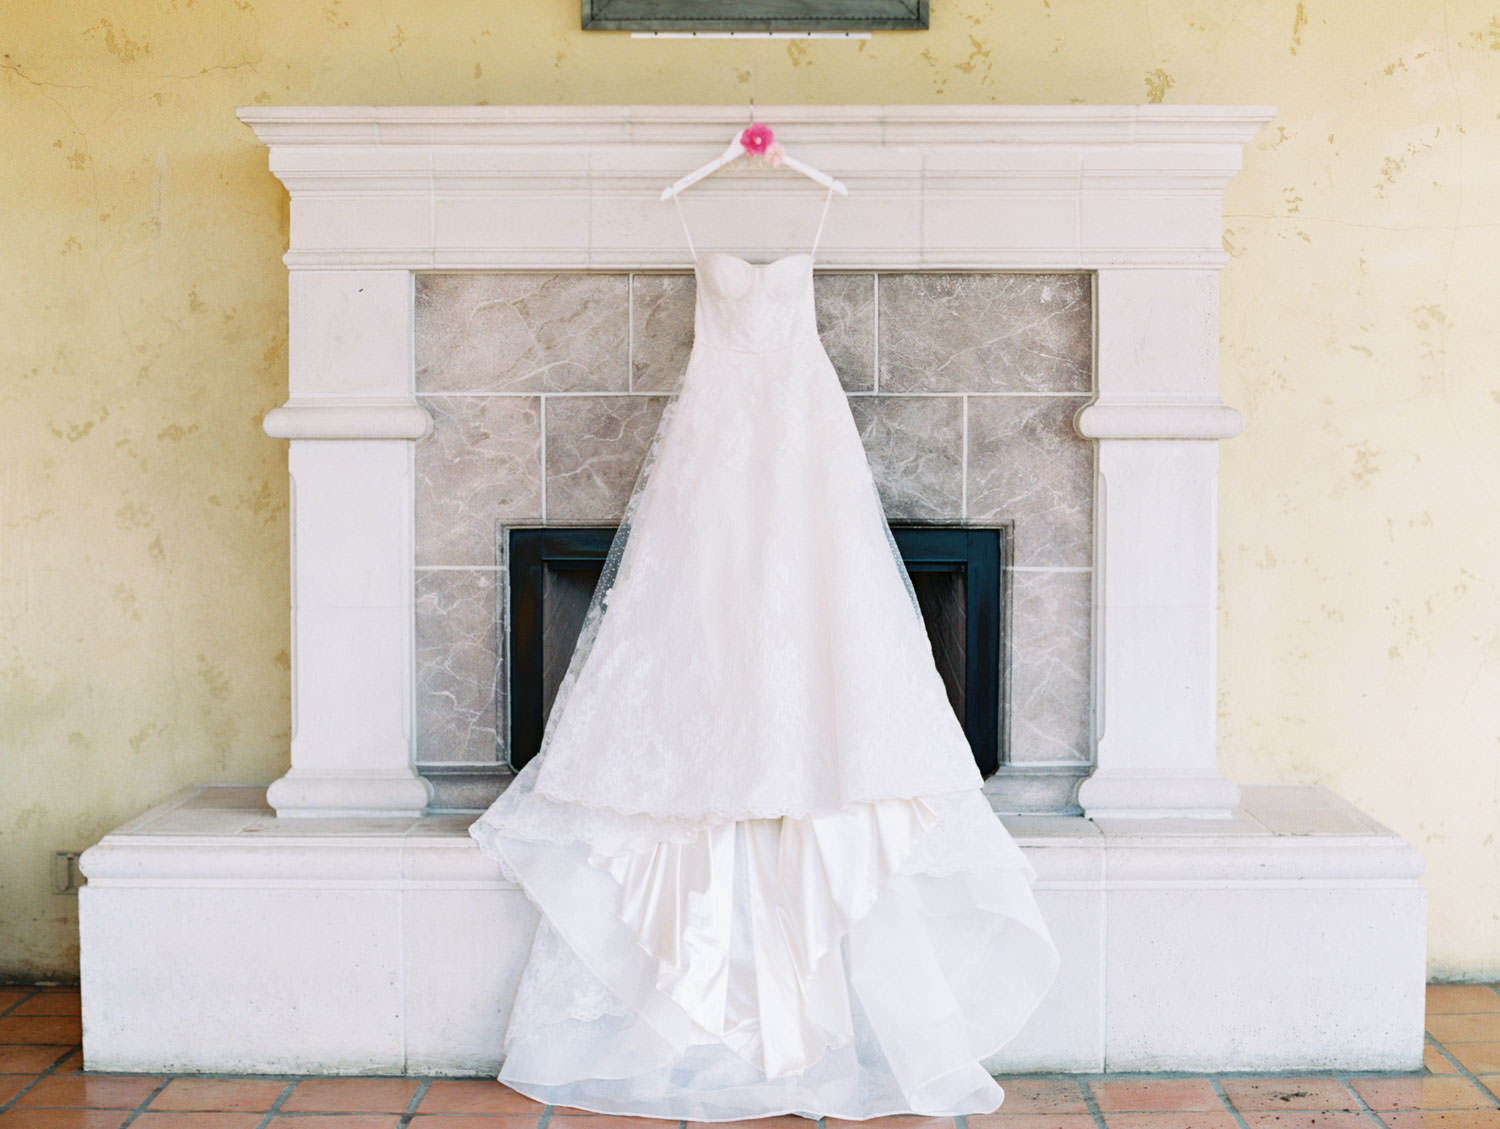 Watters lace sweetheart neckline wedding gown on a custom hanger adorned with pink flowers. Miramonte Resort wedding. Film photography by Cavin Elizabeth.